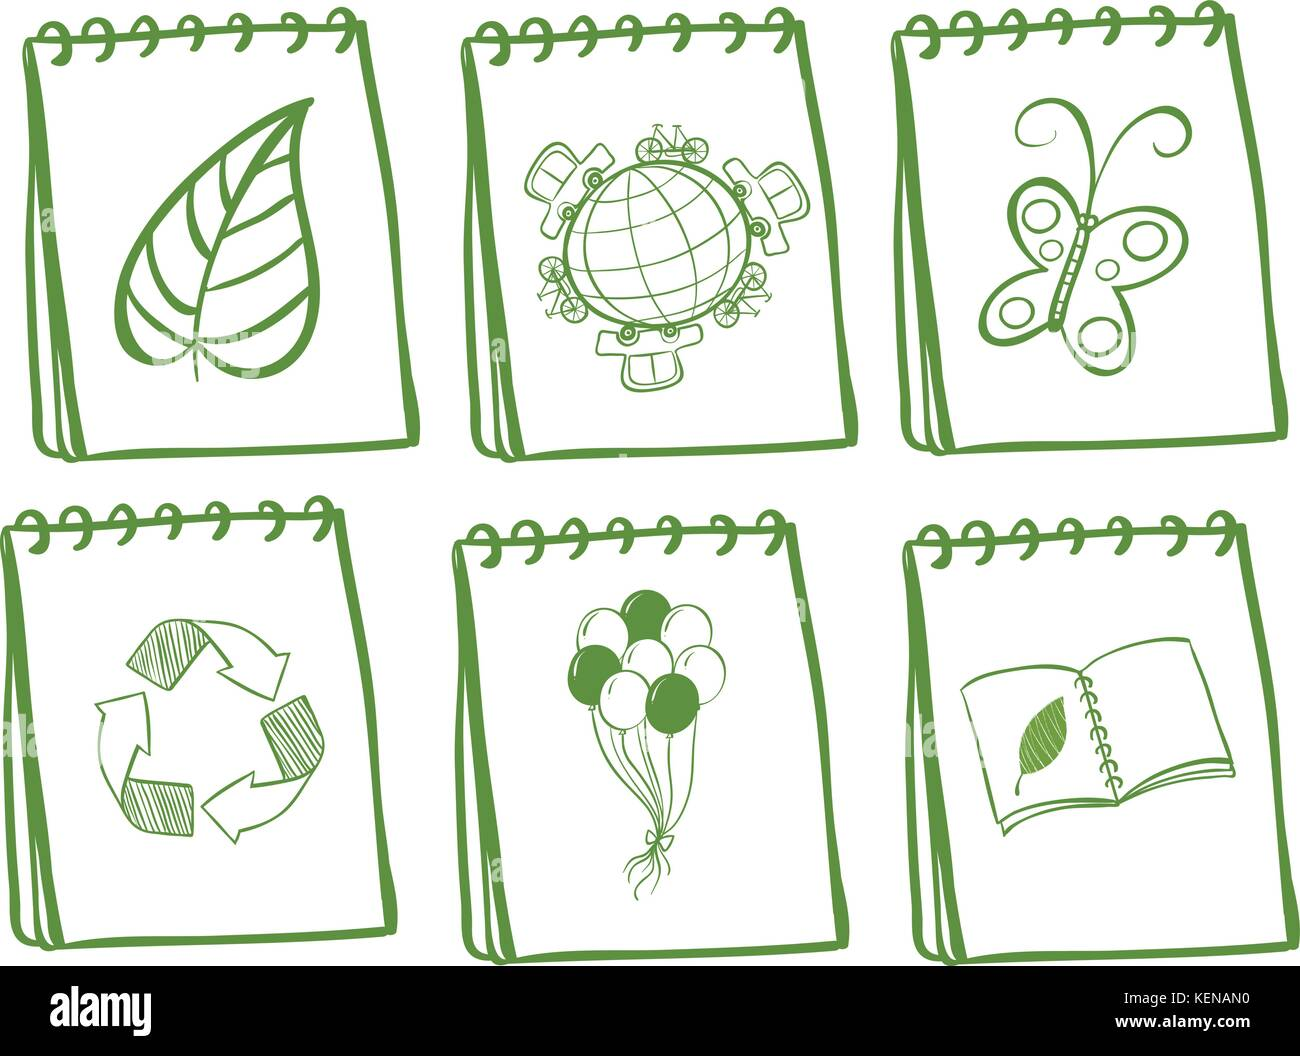 Earth cartoon recycle symbol stock photos earth cartoon recycle illustration of six ionic of recycle symbol stock image biocorpaavc